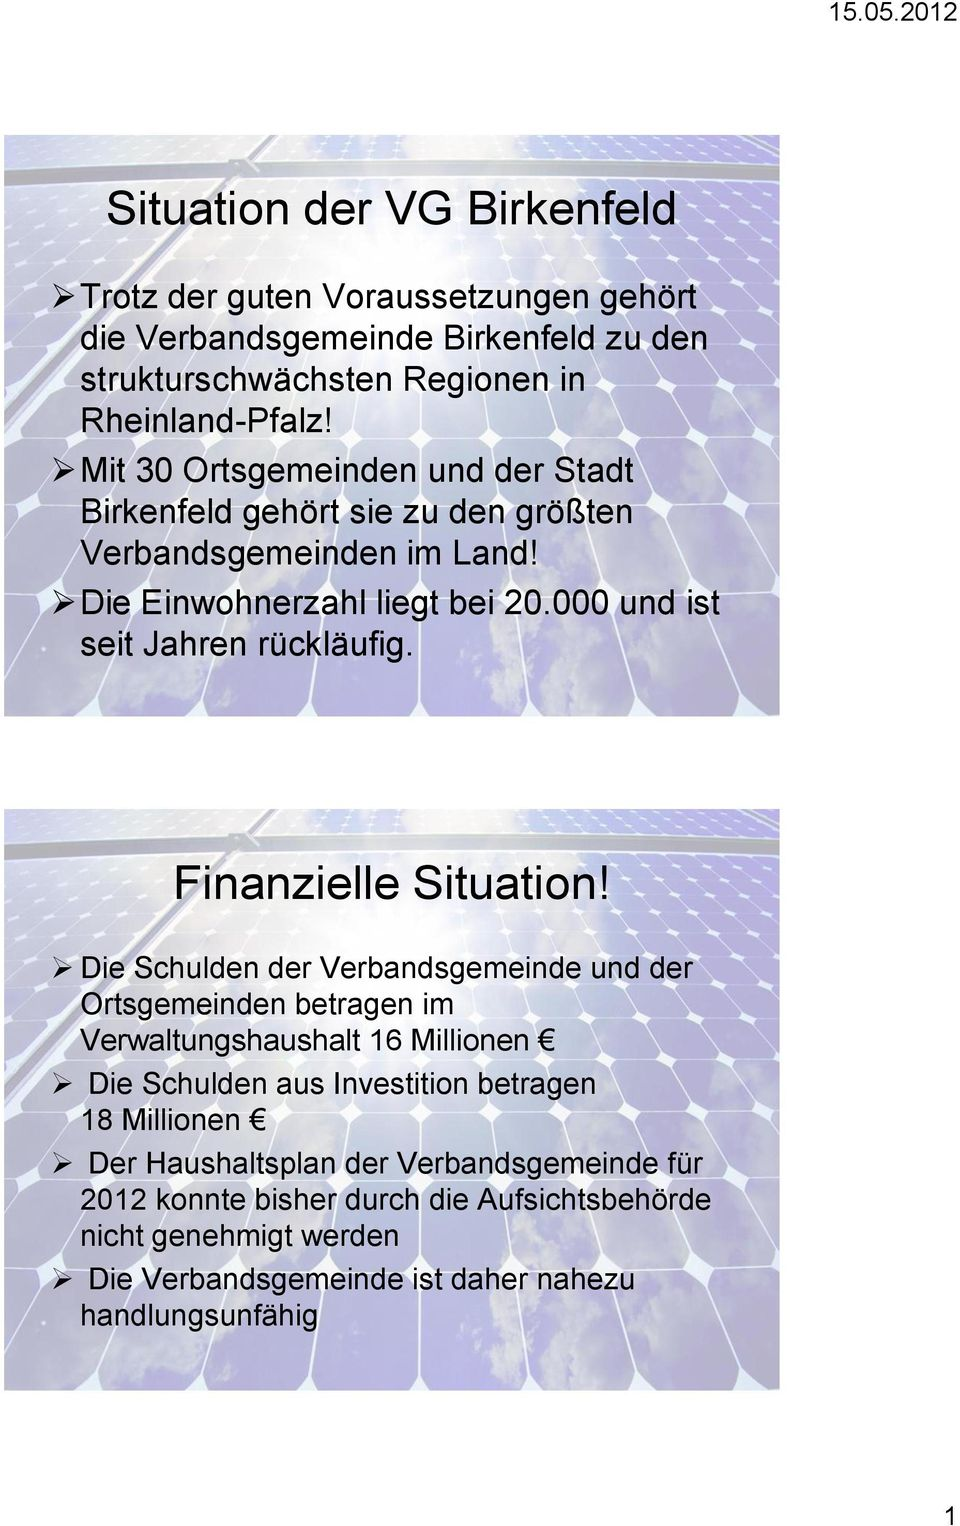 Finanzielle Situation!